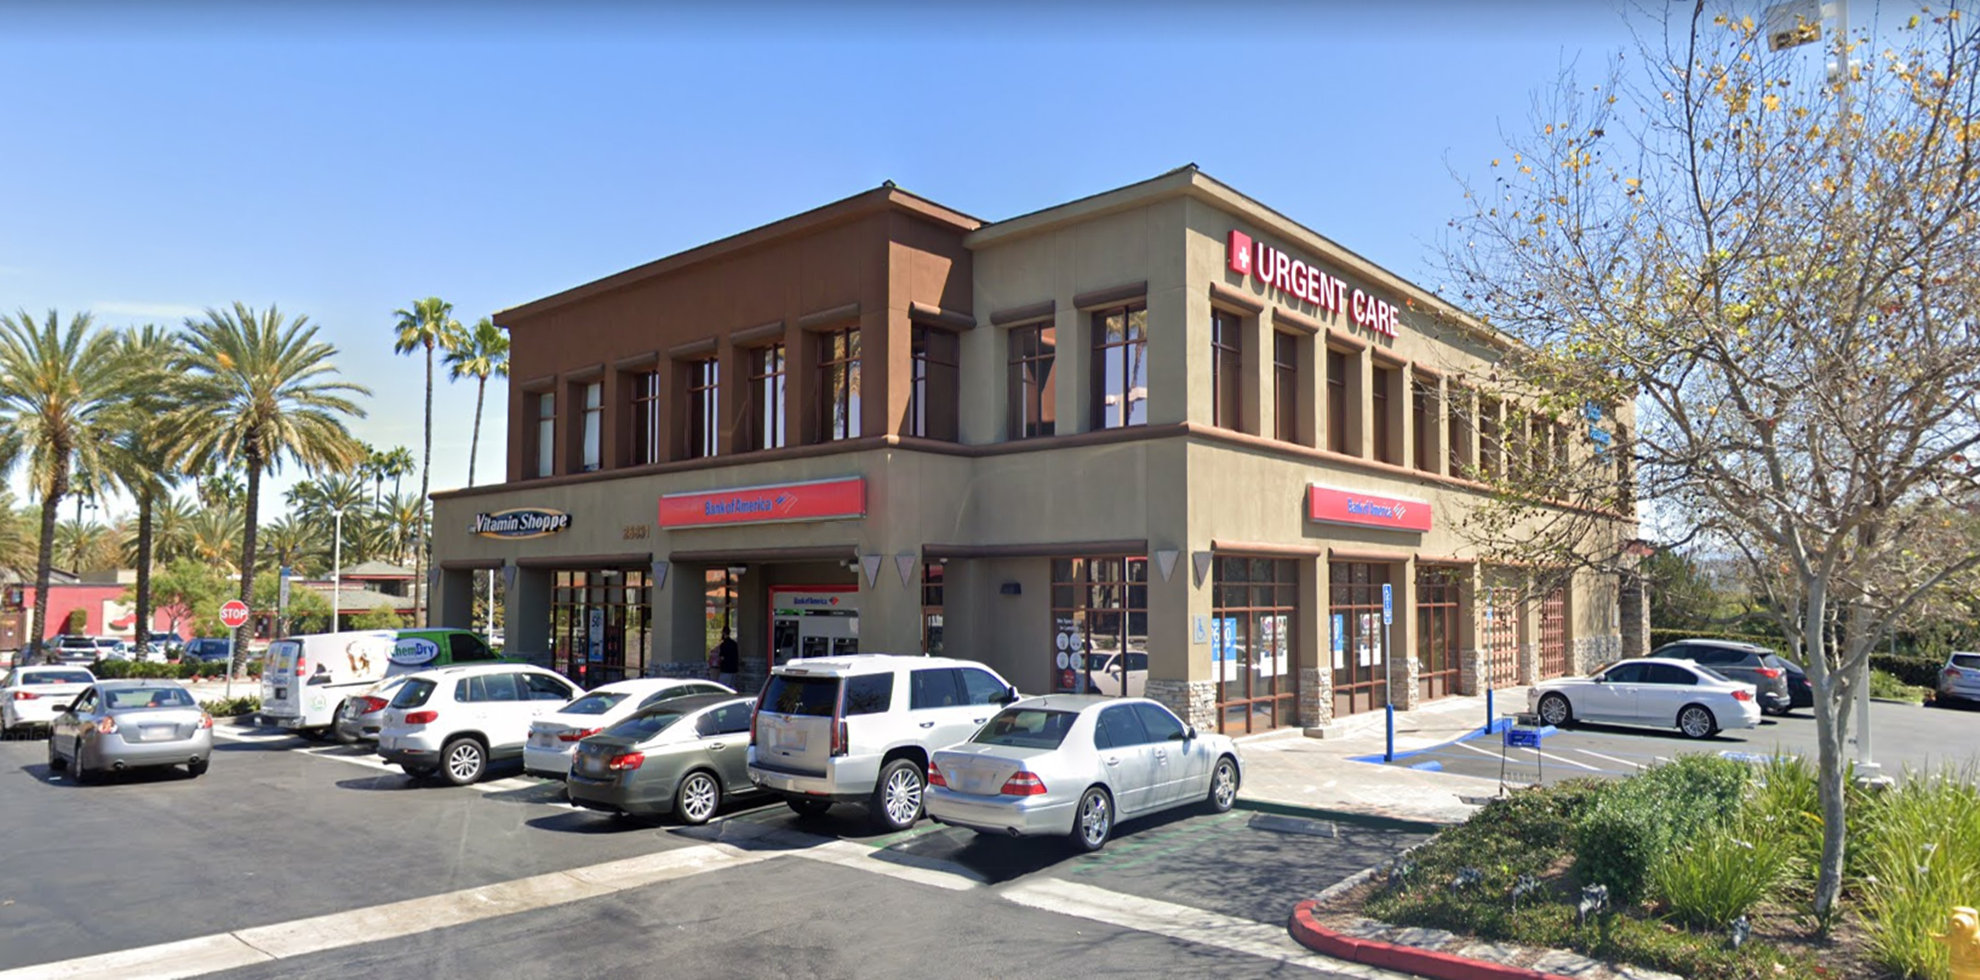 Bank of America financial center with walk-up ATM | 26831 Aliso Creek Rd, Aliso Viejo, CA 92656